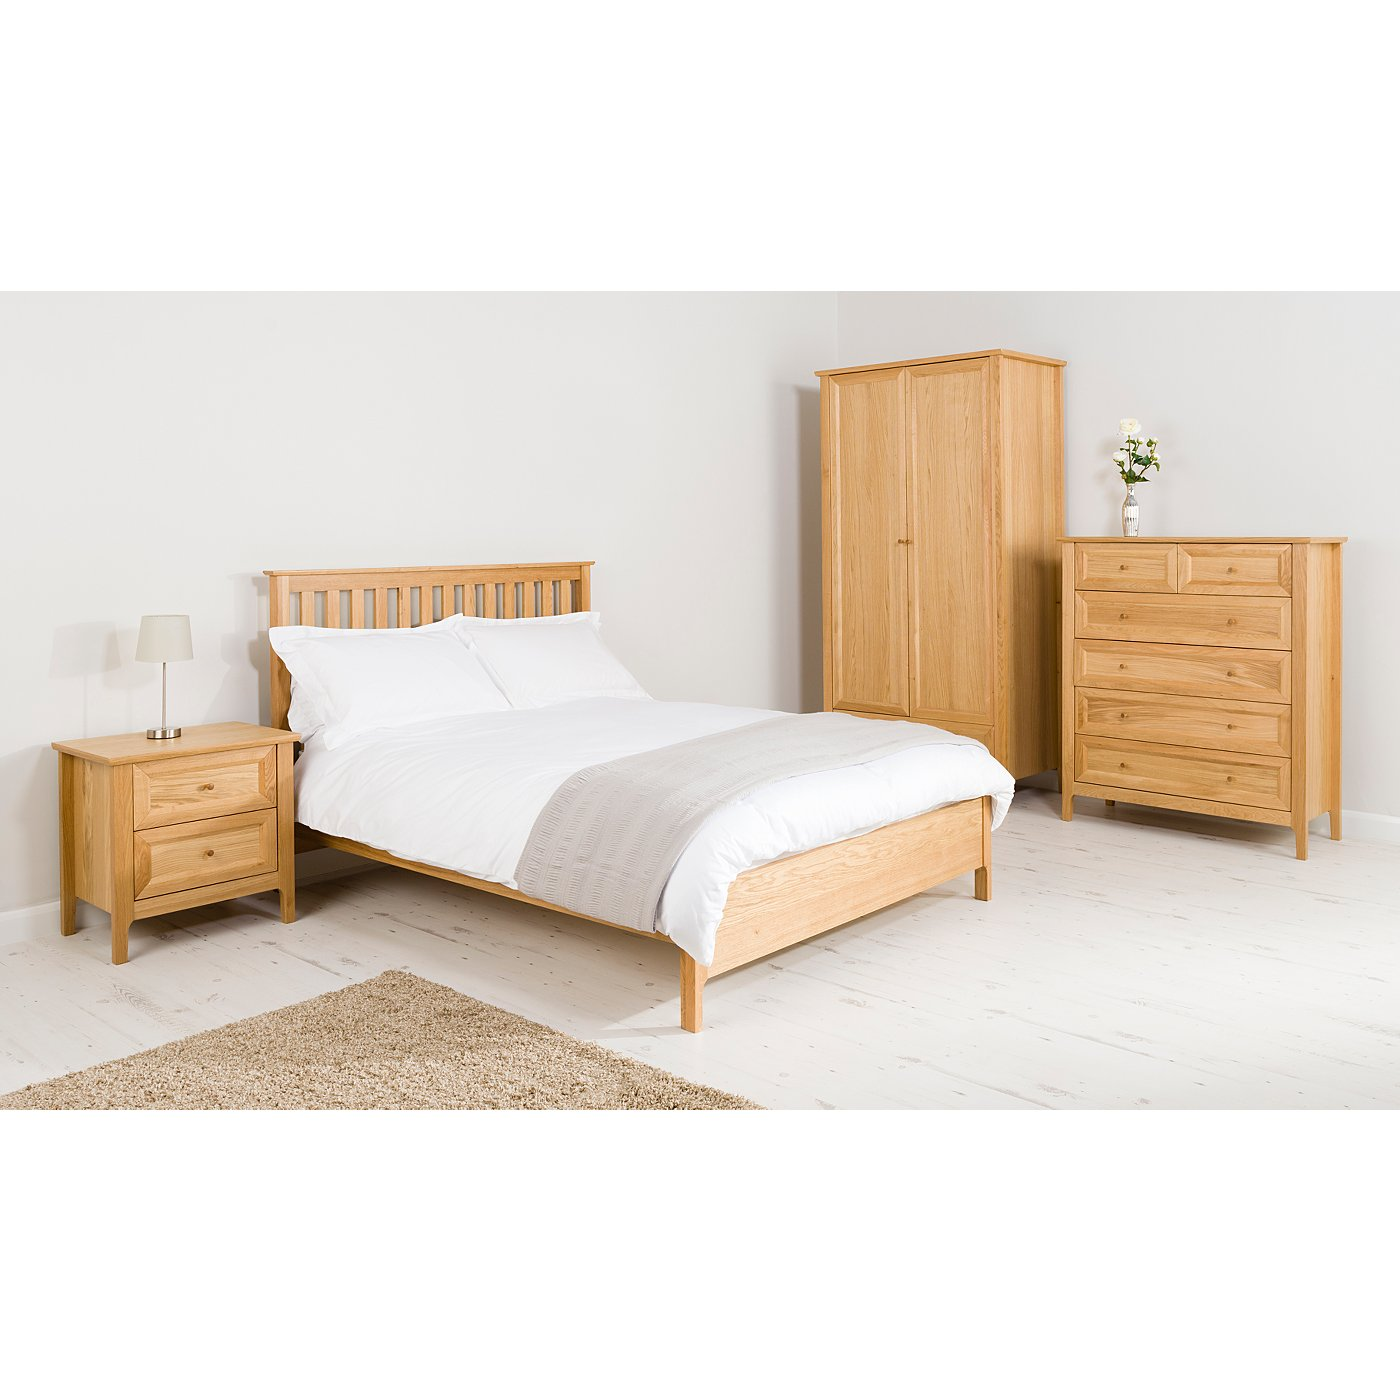 Oak veneer bedroom furniture uk home for Bedroom furniture uk